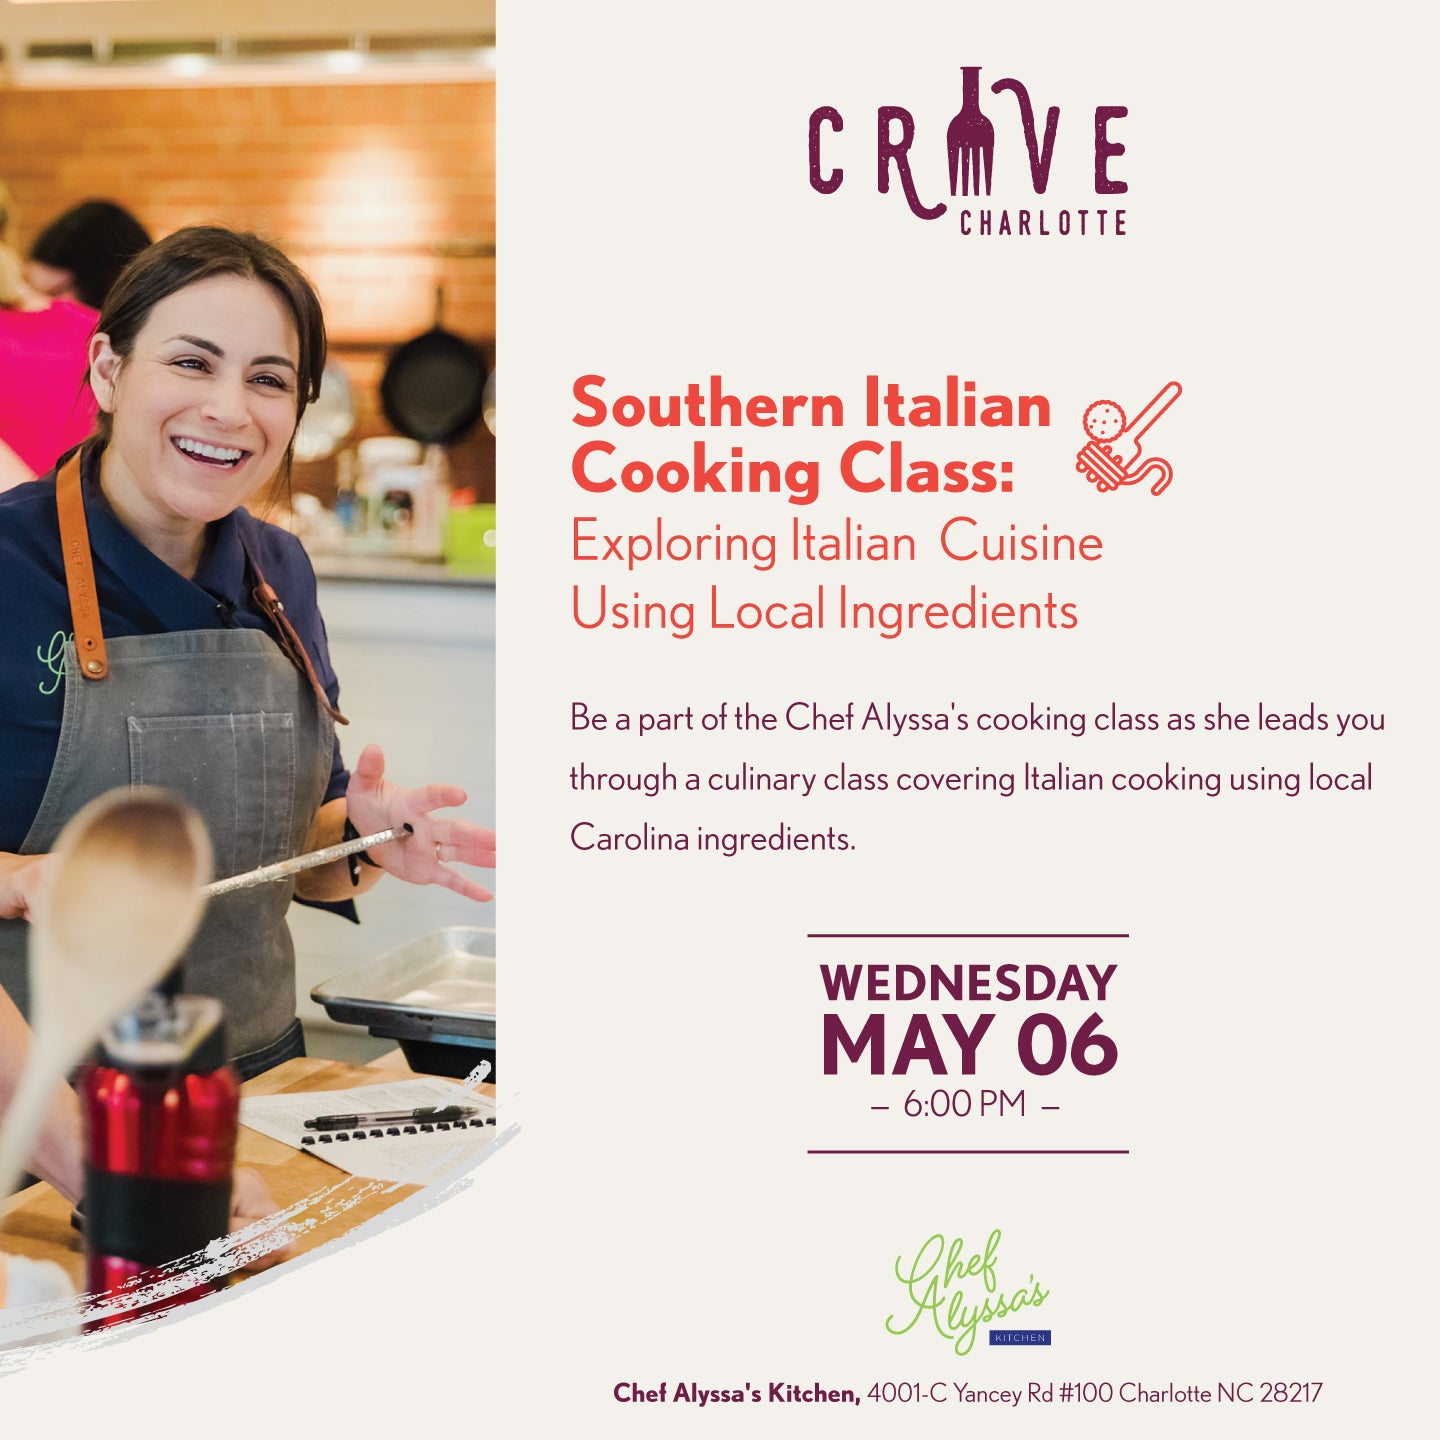 Southern Italian Cooking Class: Exploring Italian Cuisine Using Local Ingredients